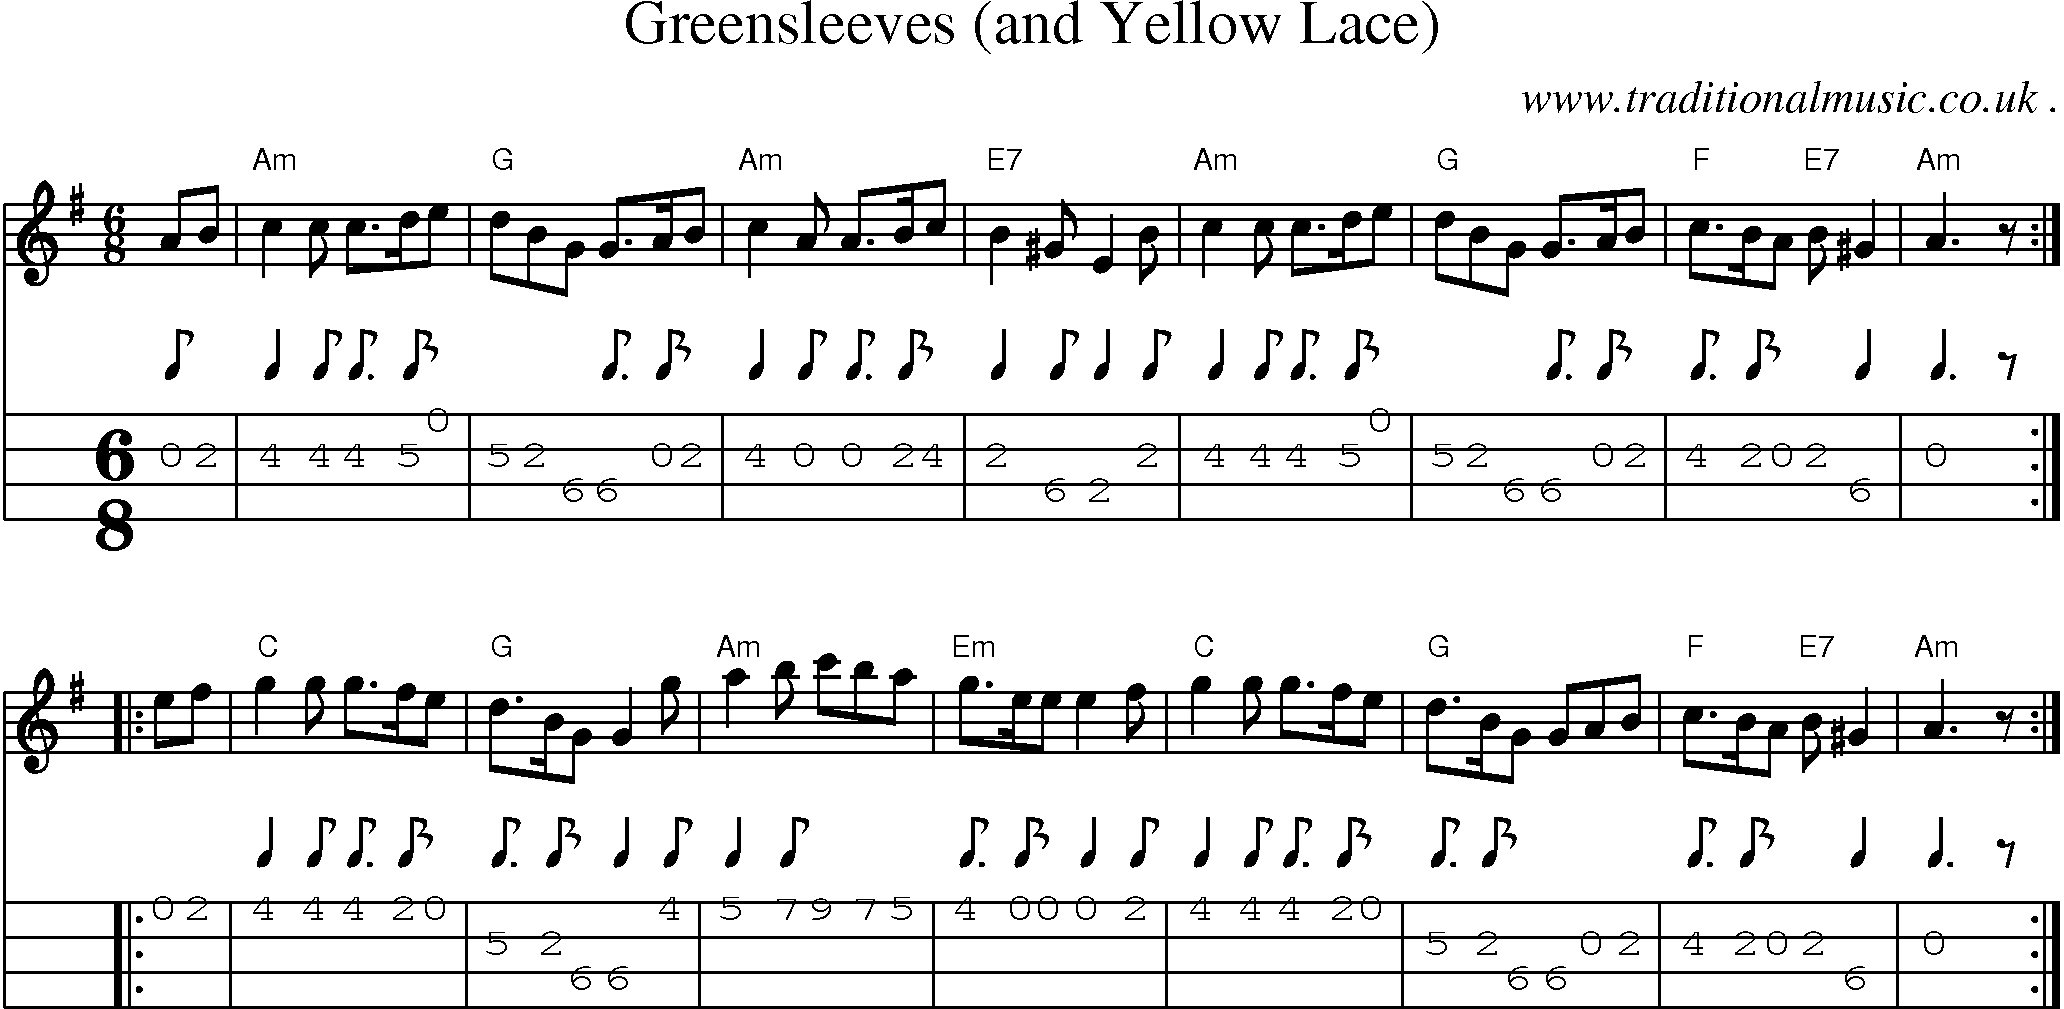 Scottish Tune, Sheetmusic, Midi, Mp3, Mandolin Tab and PDF for: Greensleeves And Yellow Lace